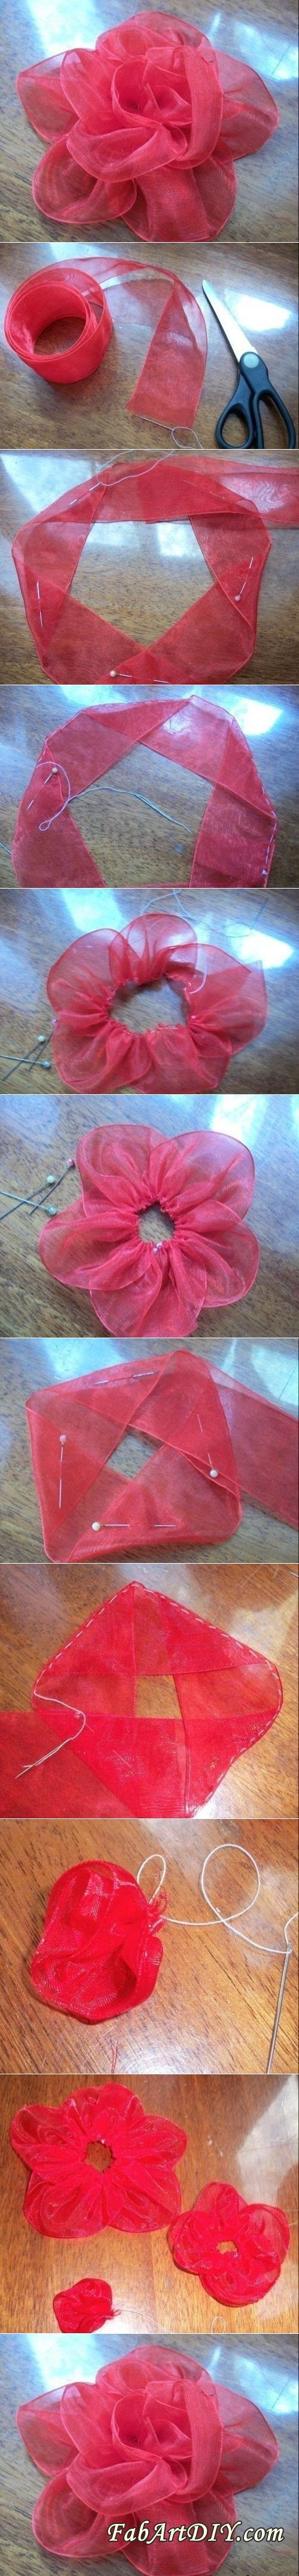 DIY Big Silk Ribbon Rose | www.FabArtDIY.com LIKE Us on Facebook ==> https://www.facebook.com/FabArtDIY